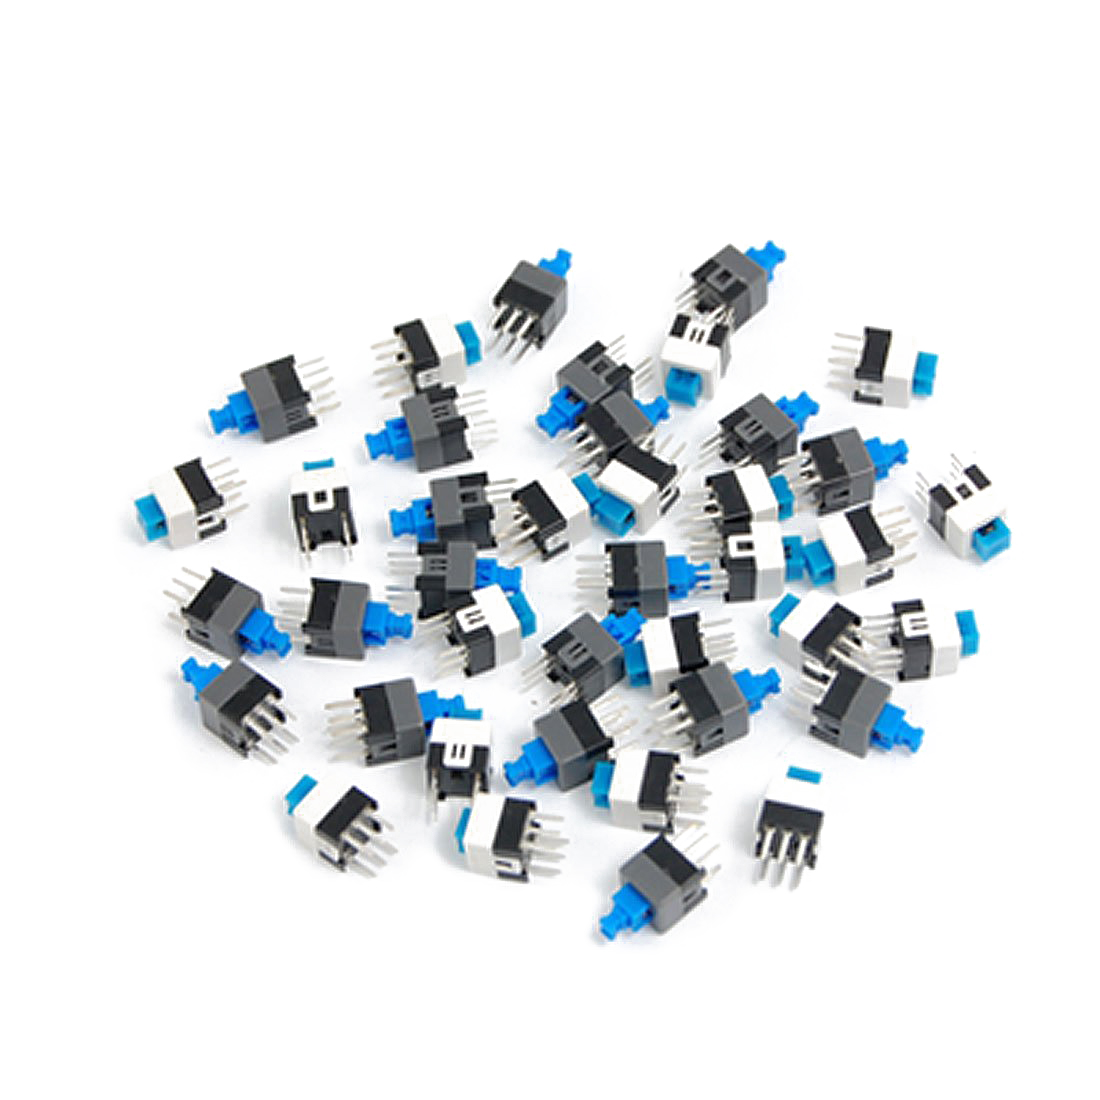 Promotion! 40 Pcs 7 x 7mm PCB Tact Tactile Push Button Switch Self Lock 6 Pin DIP 50pcs lot 6x6x5mm 4pin g90 tactile tact push button micro switch direct self reset dip top copper free shipping russia